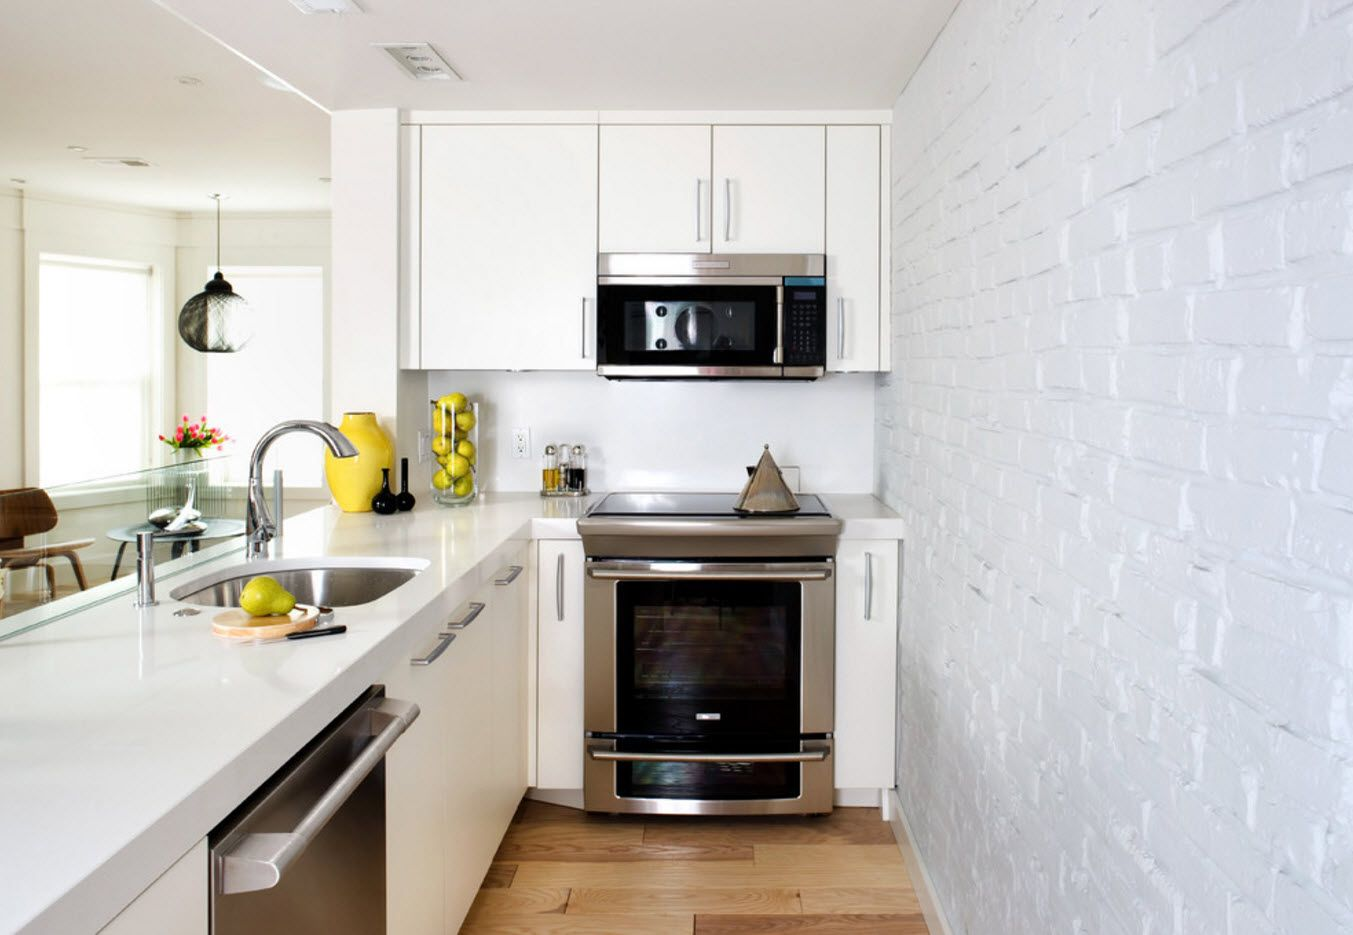 Modular setting of the kitchen accessories in the framework of white design theme